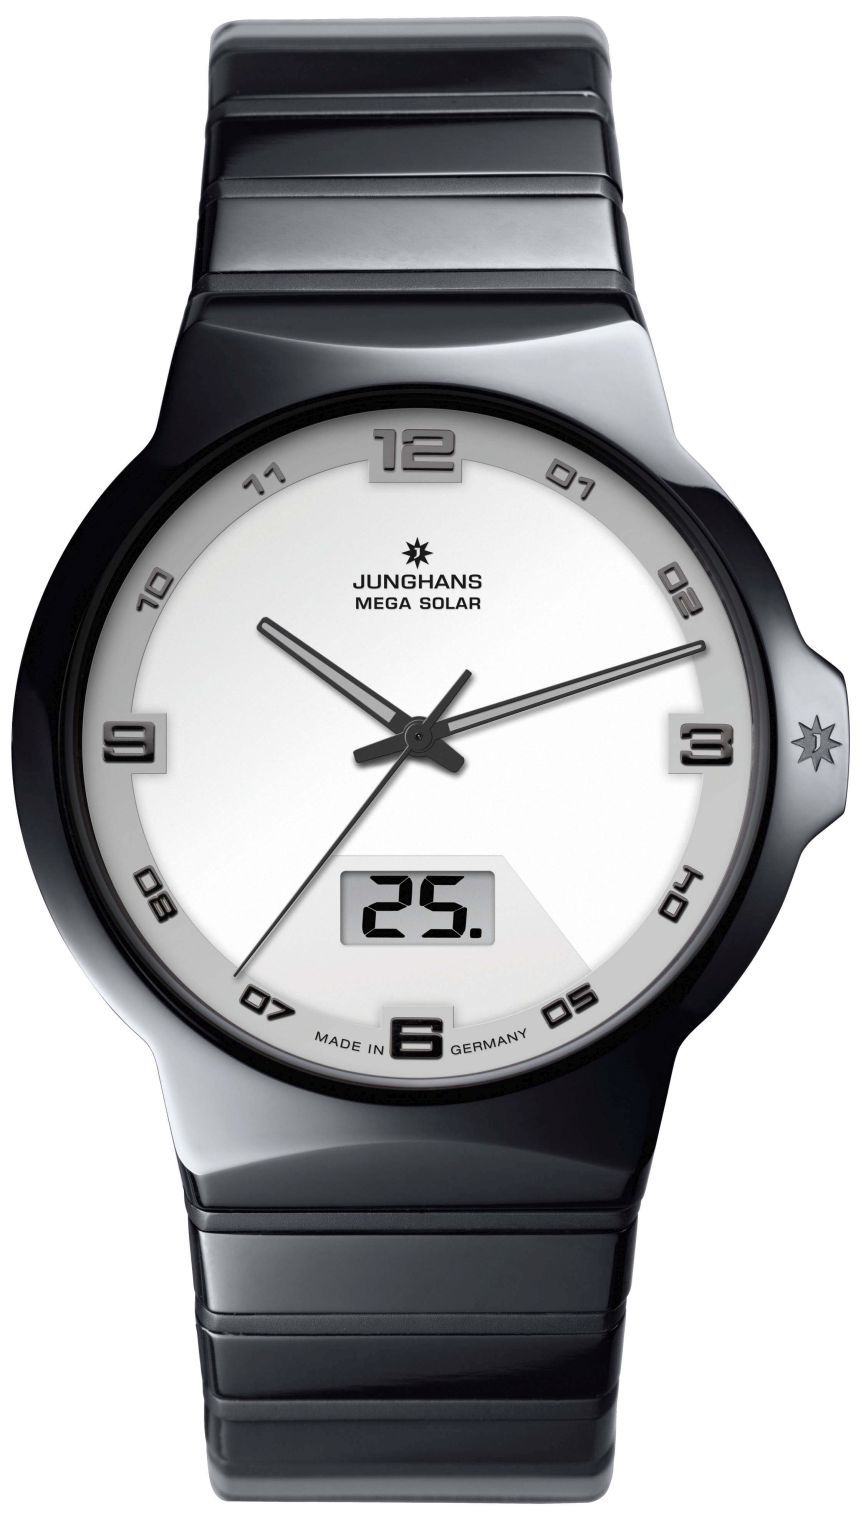 Junghans Force Mega Solar Watch With Wireless Charge And Sync Ablogtowatch Junghans Watch Solar Watch Junghans